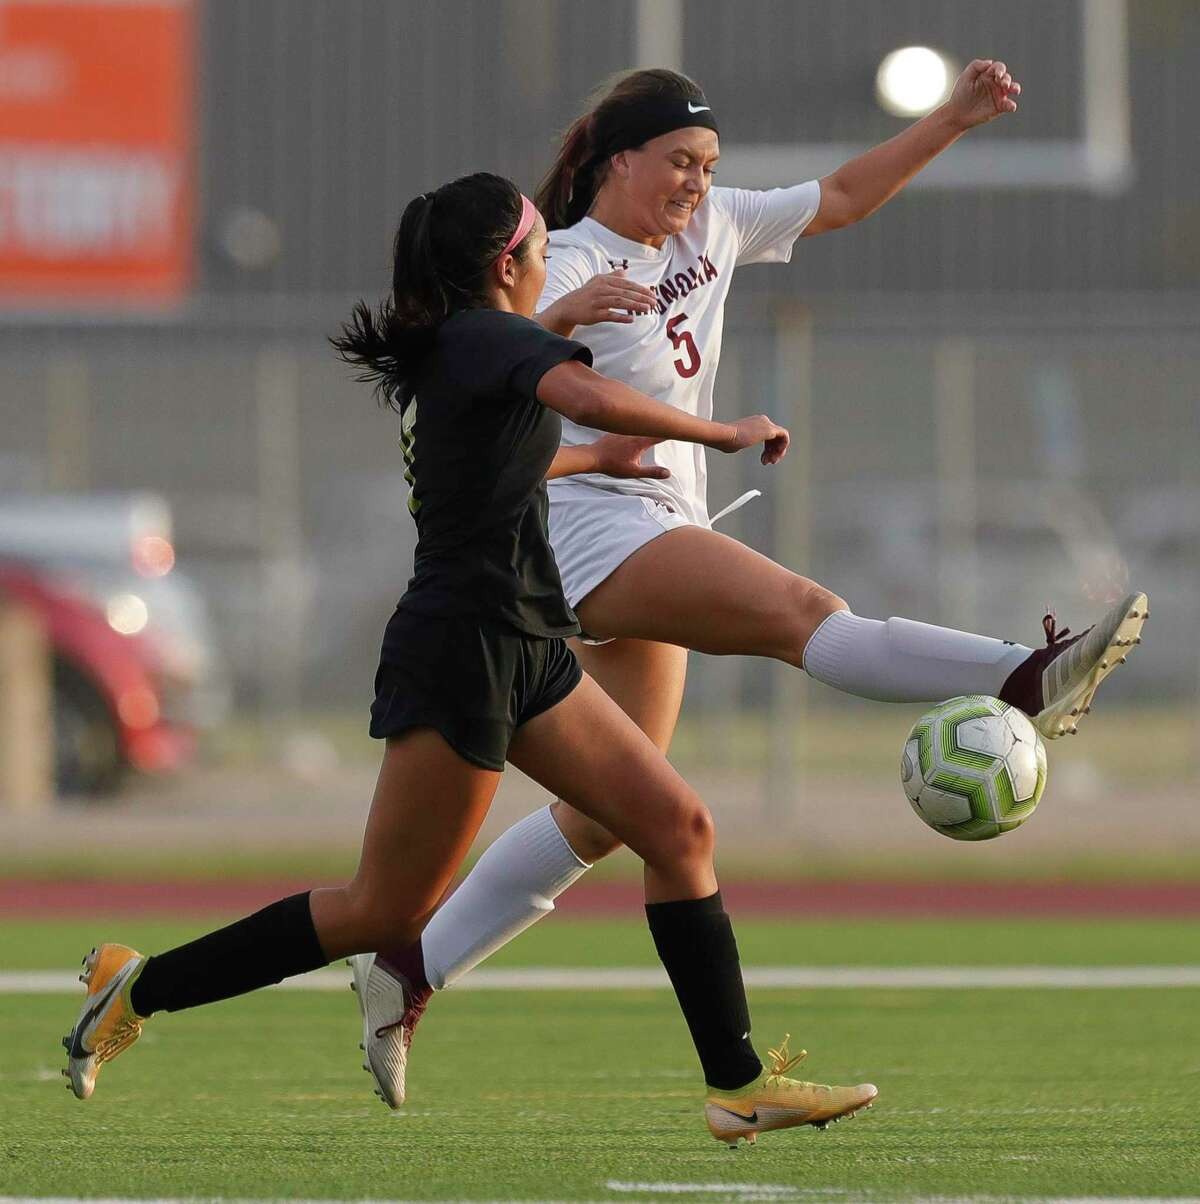 Magnolia's Avery Tindall (5) contests the ball against Foster's Abrie Morales (7) during the first period of a Region III-5A semifinal match at Cypress Falls High School, Tuesday, April 6, 2021, in Cypress.